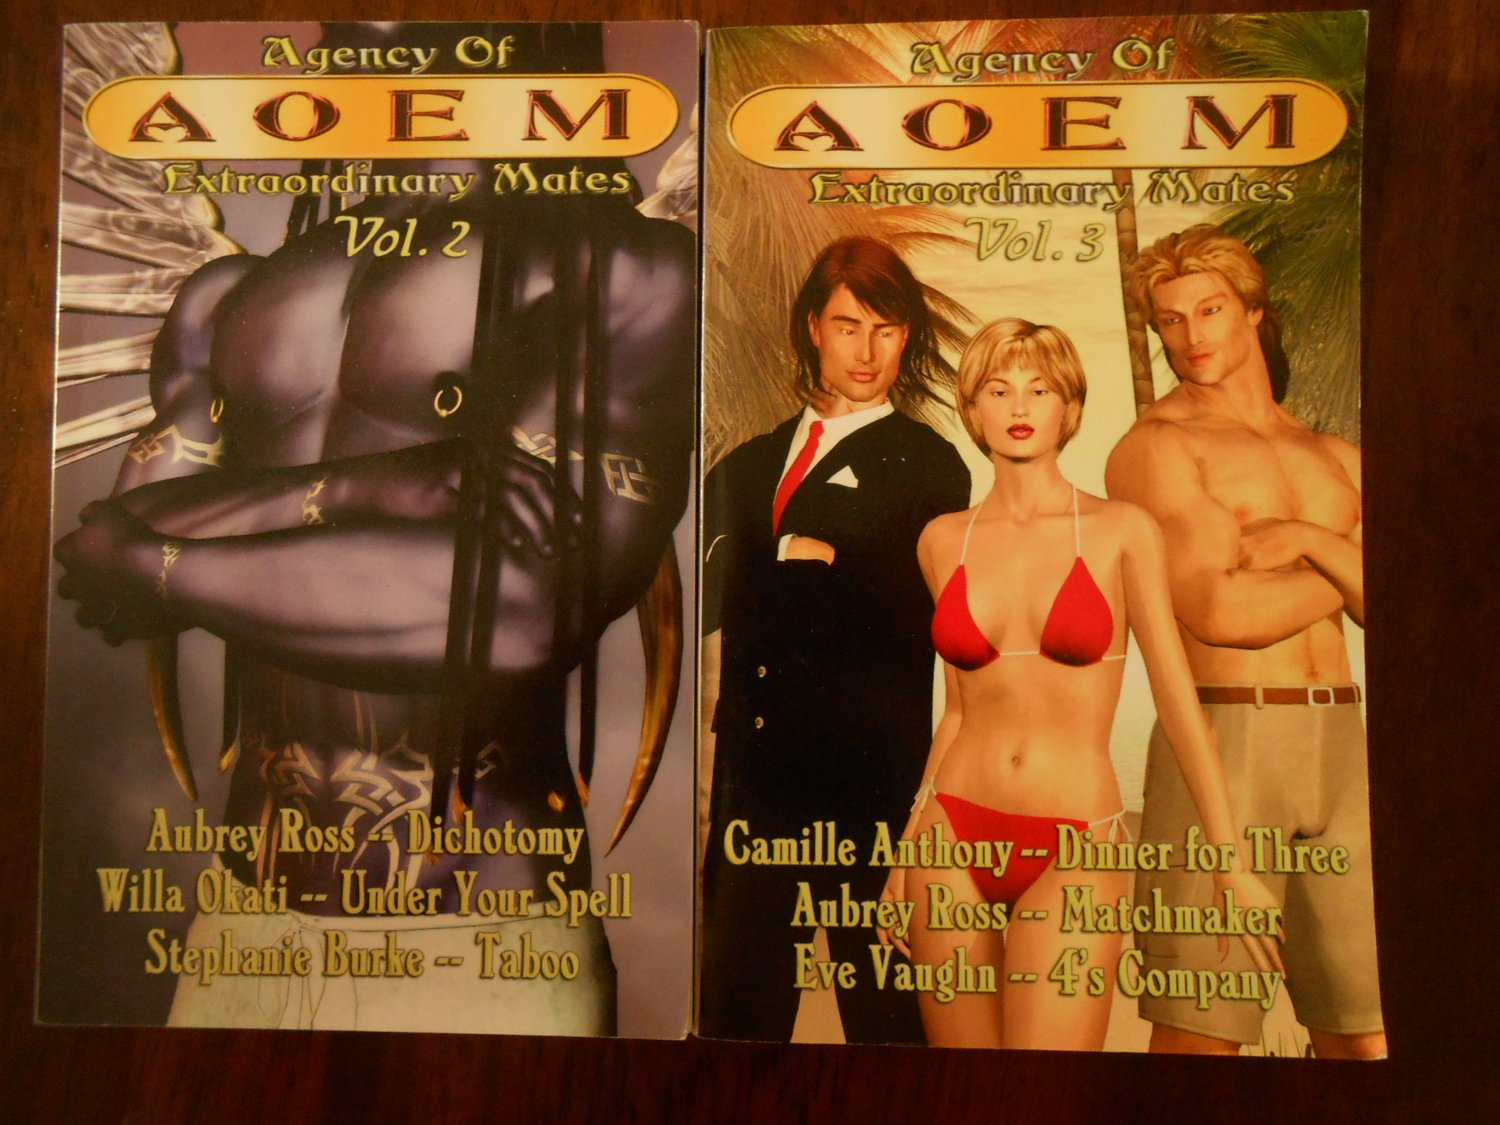 AGENCY OF EXTRAORDINARY MATES, VOLS. 2 & 3 by Camille Anthony, Aubrey Ross, etc